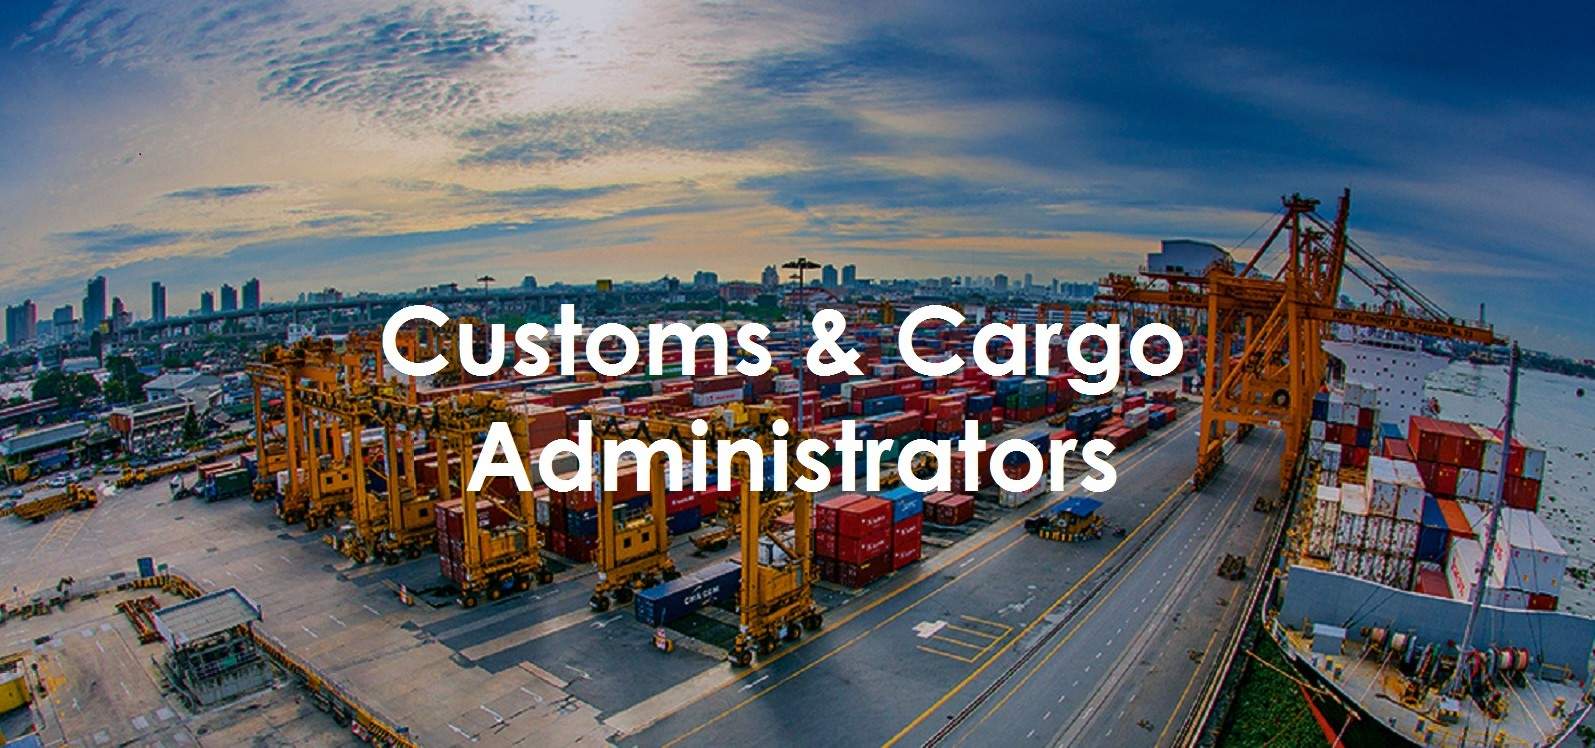 Customs & Cargo Administrators